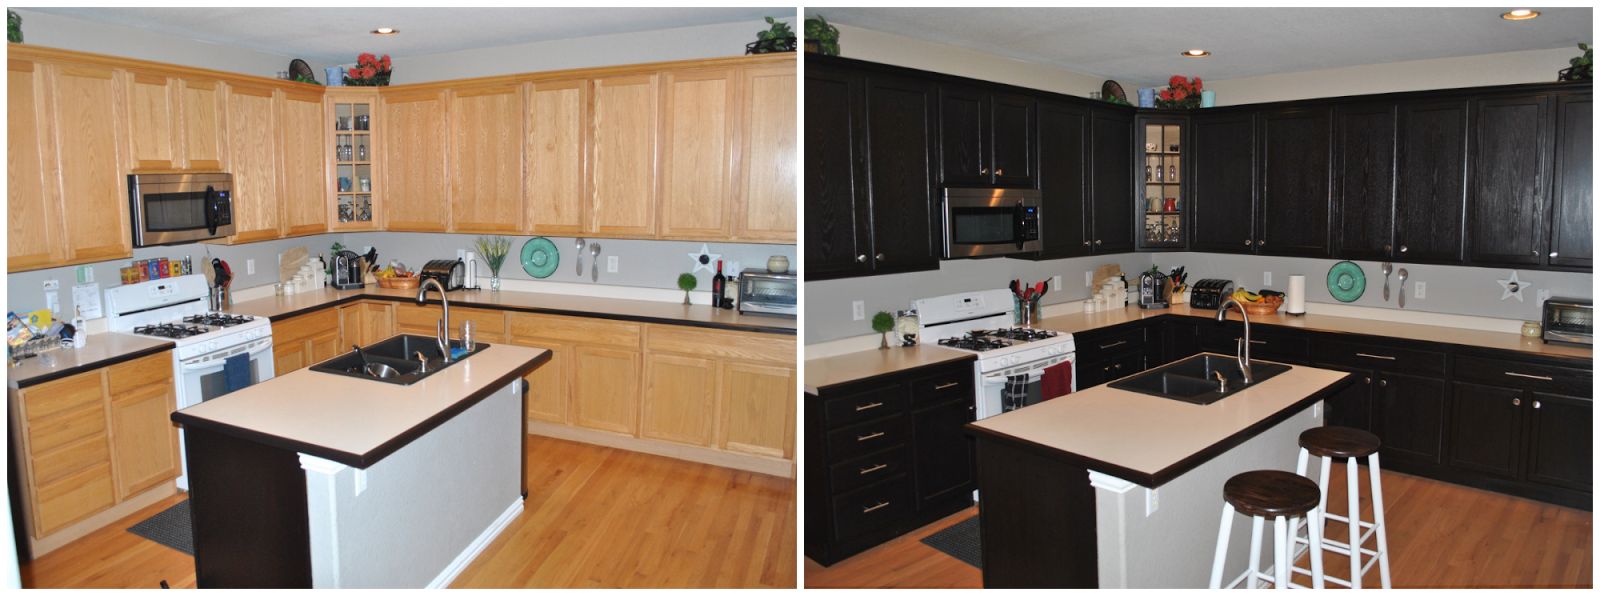 Kitchen Cabinets For Less Our Little Bubble Diy Expresso Kitchen Cabinets Yes Please